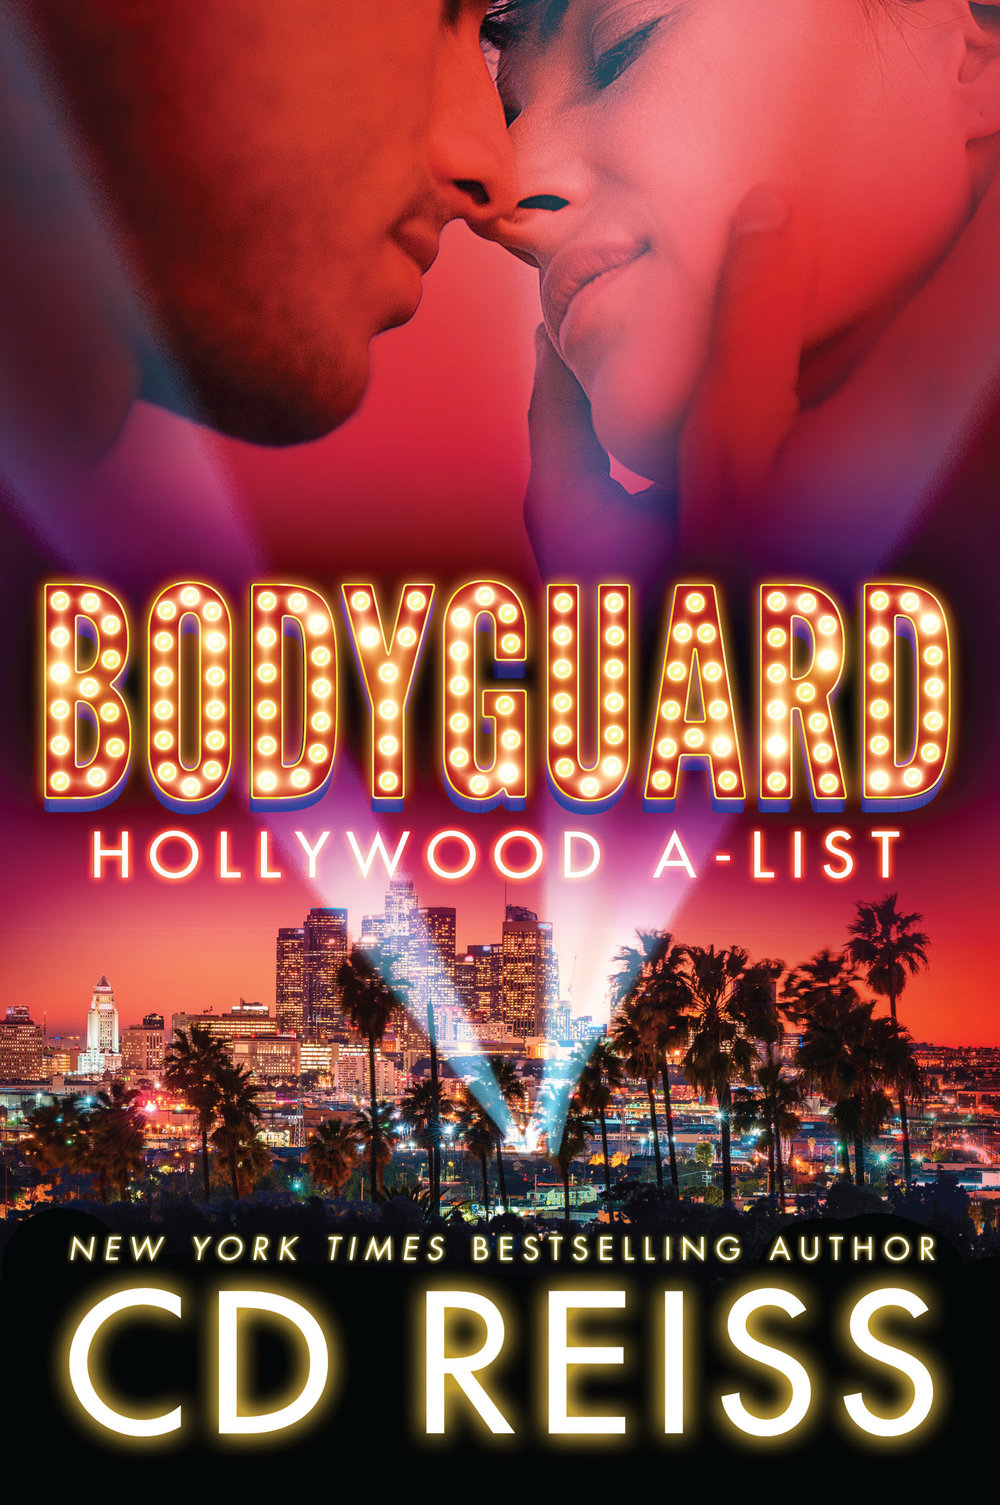 Bodyguard by CD Reiss